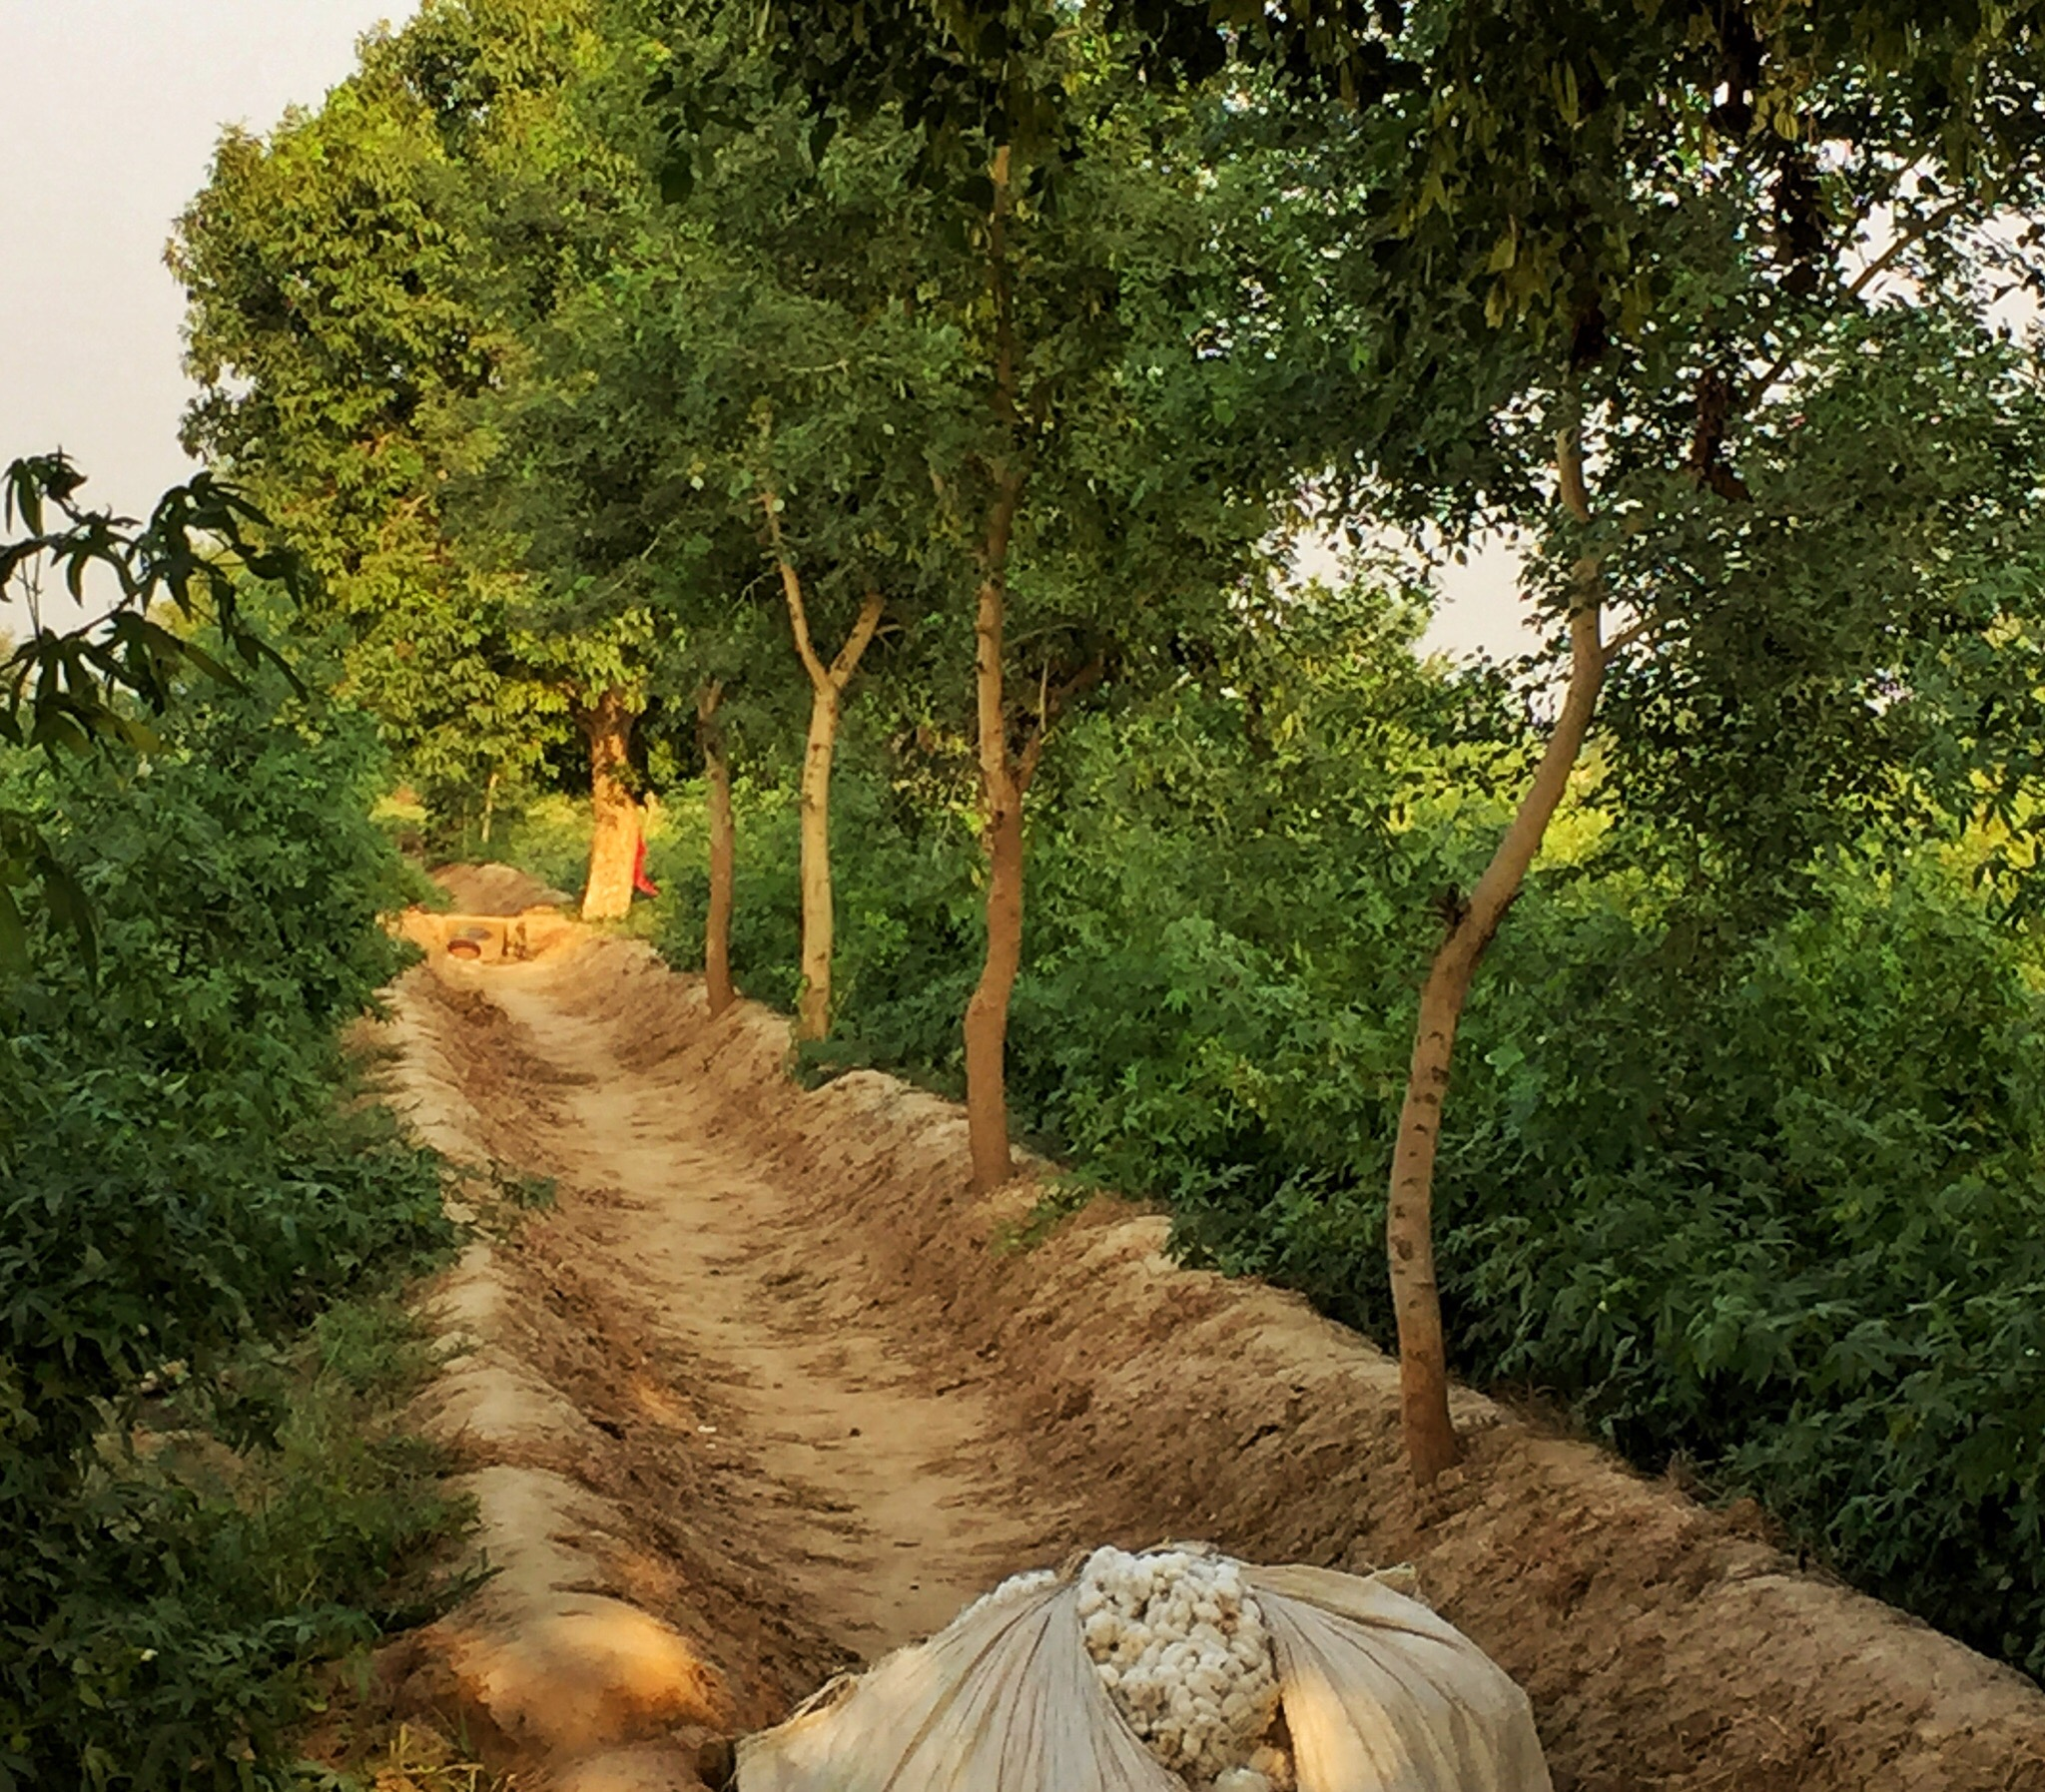 Sheesham trees grow on the banks between fields. These trees, planted as part of TFT's project with MdM and Indian farmers, are just just over two years old